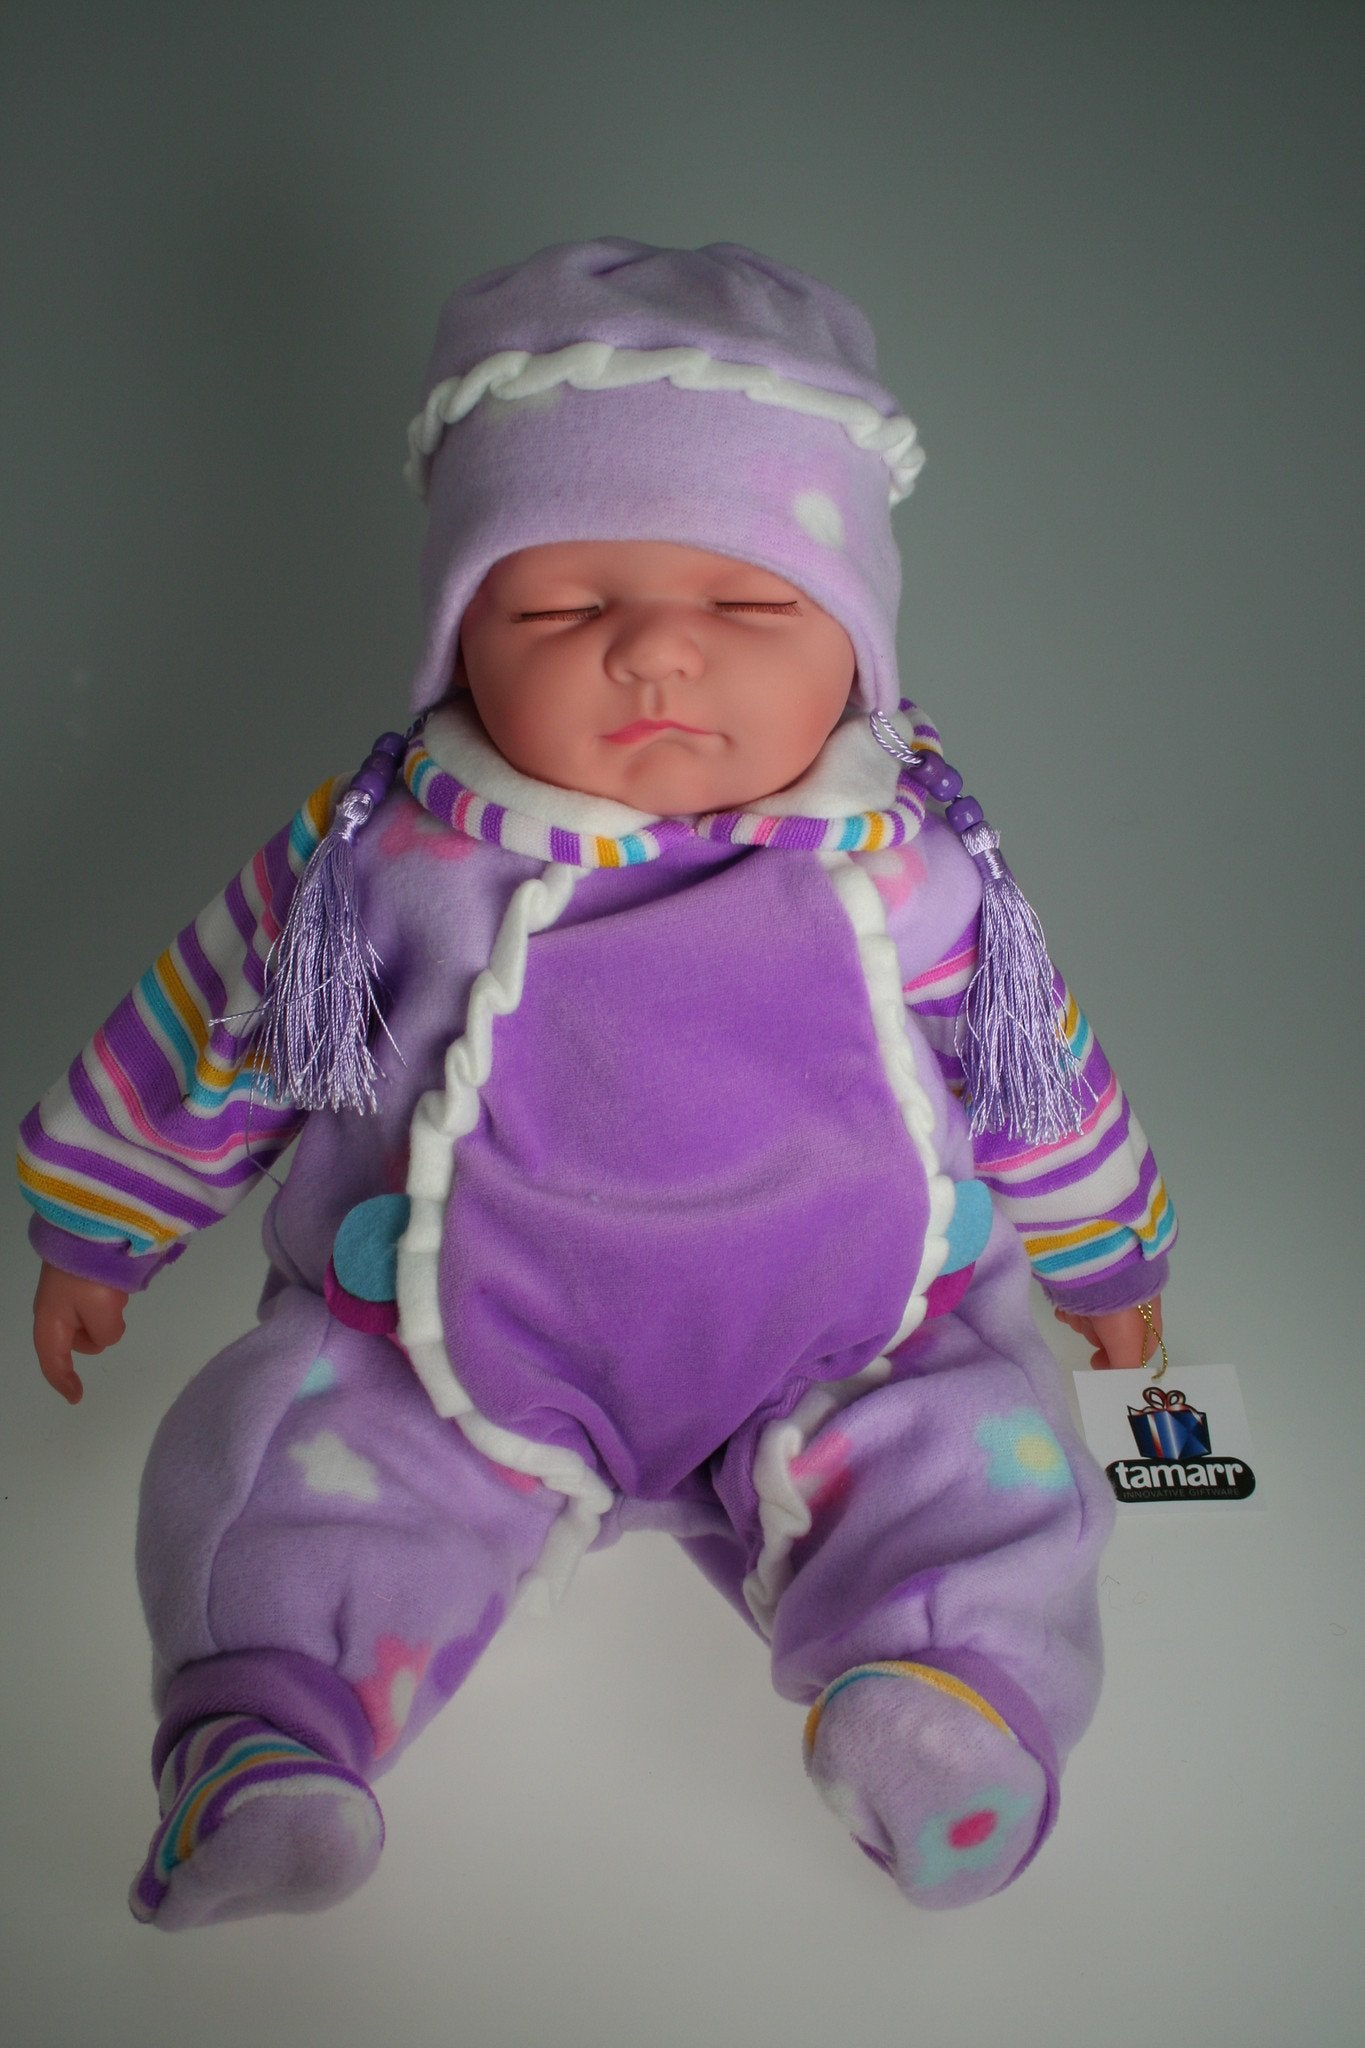 HA312 - Sleeping Baby Doll: Ashley - Tamarr Imports Innovative Giftware Pty Ltd